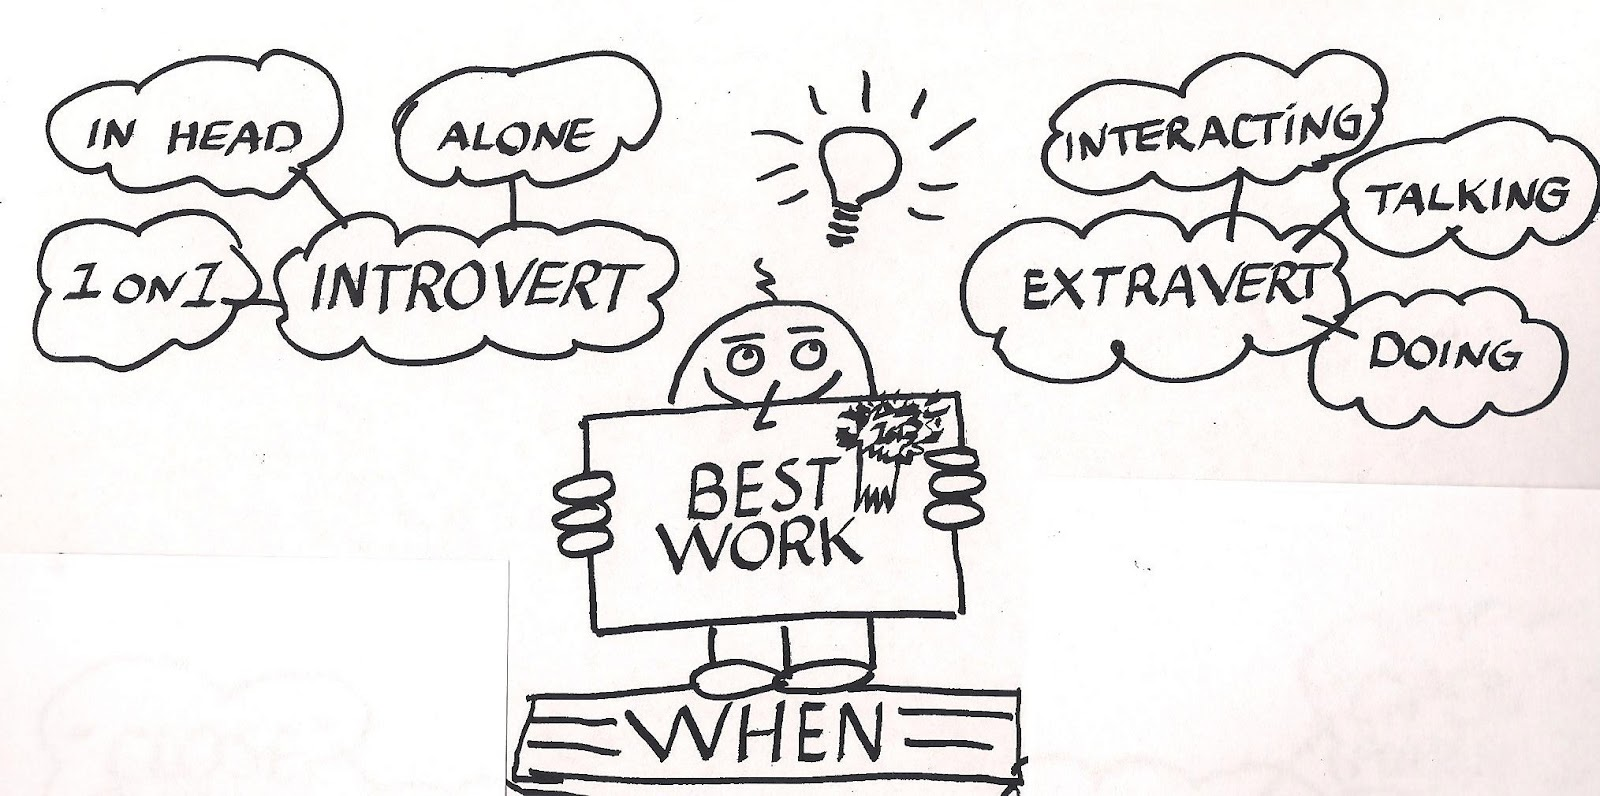 Extravert or Introvert? Best+work+introvert+and+extravert